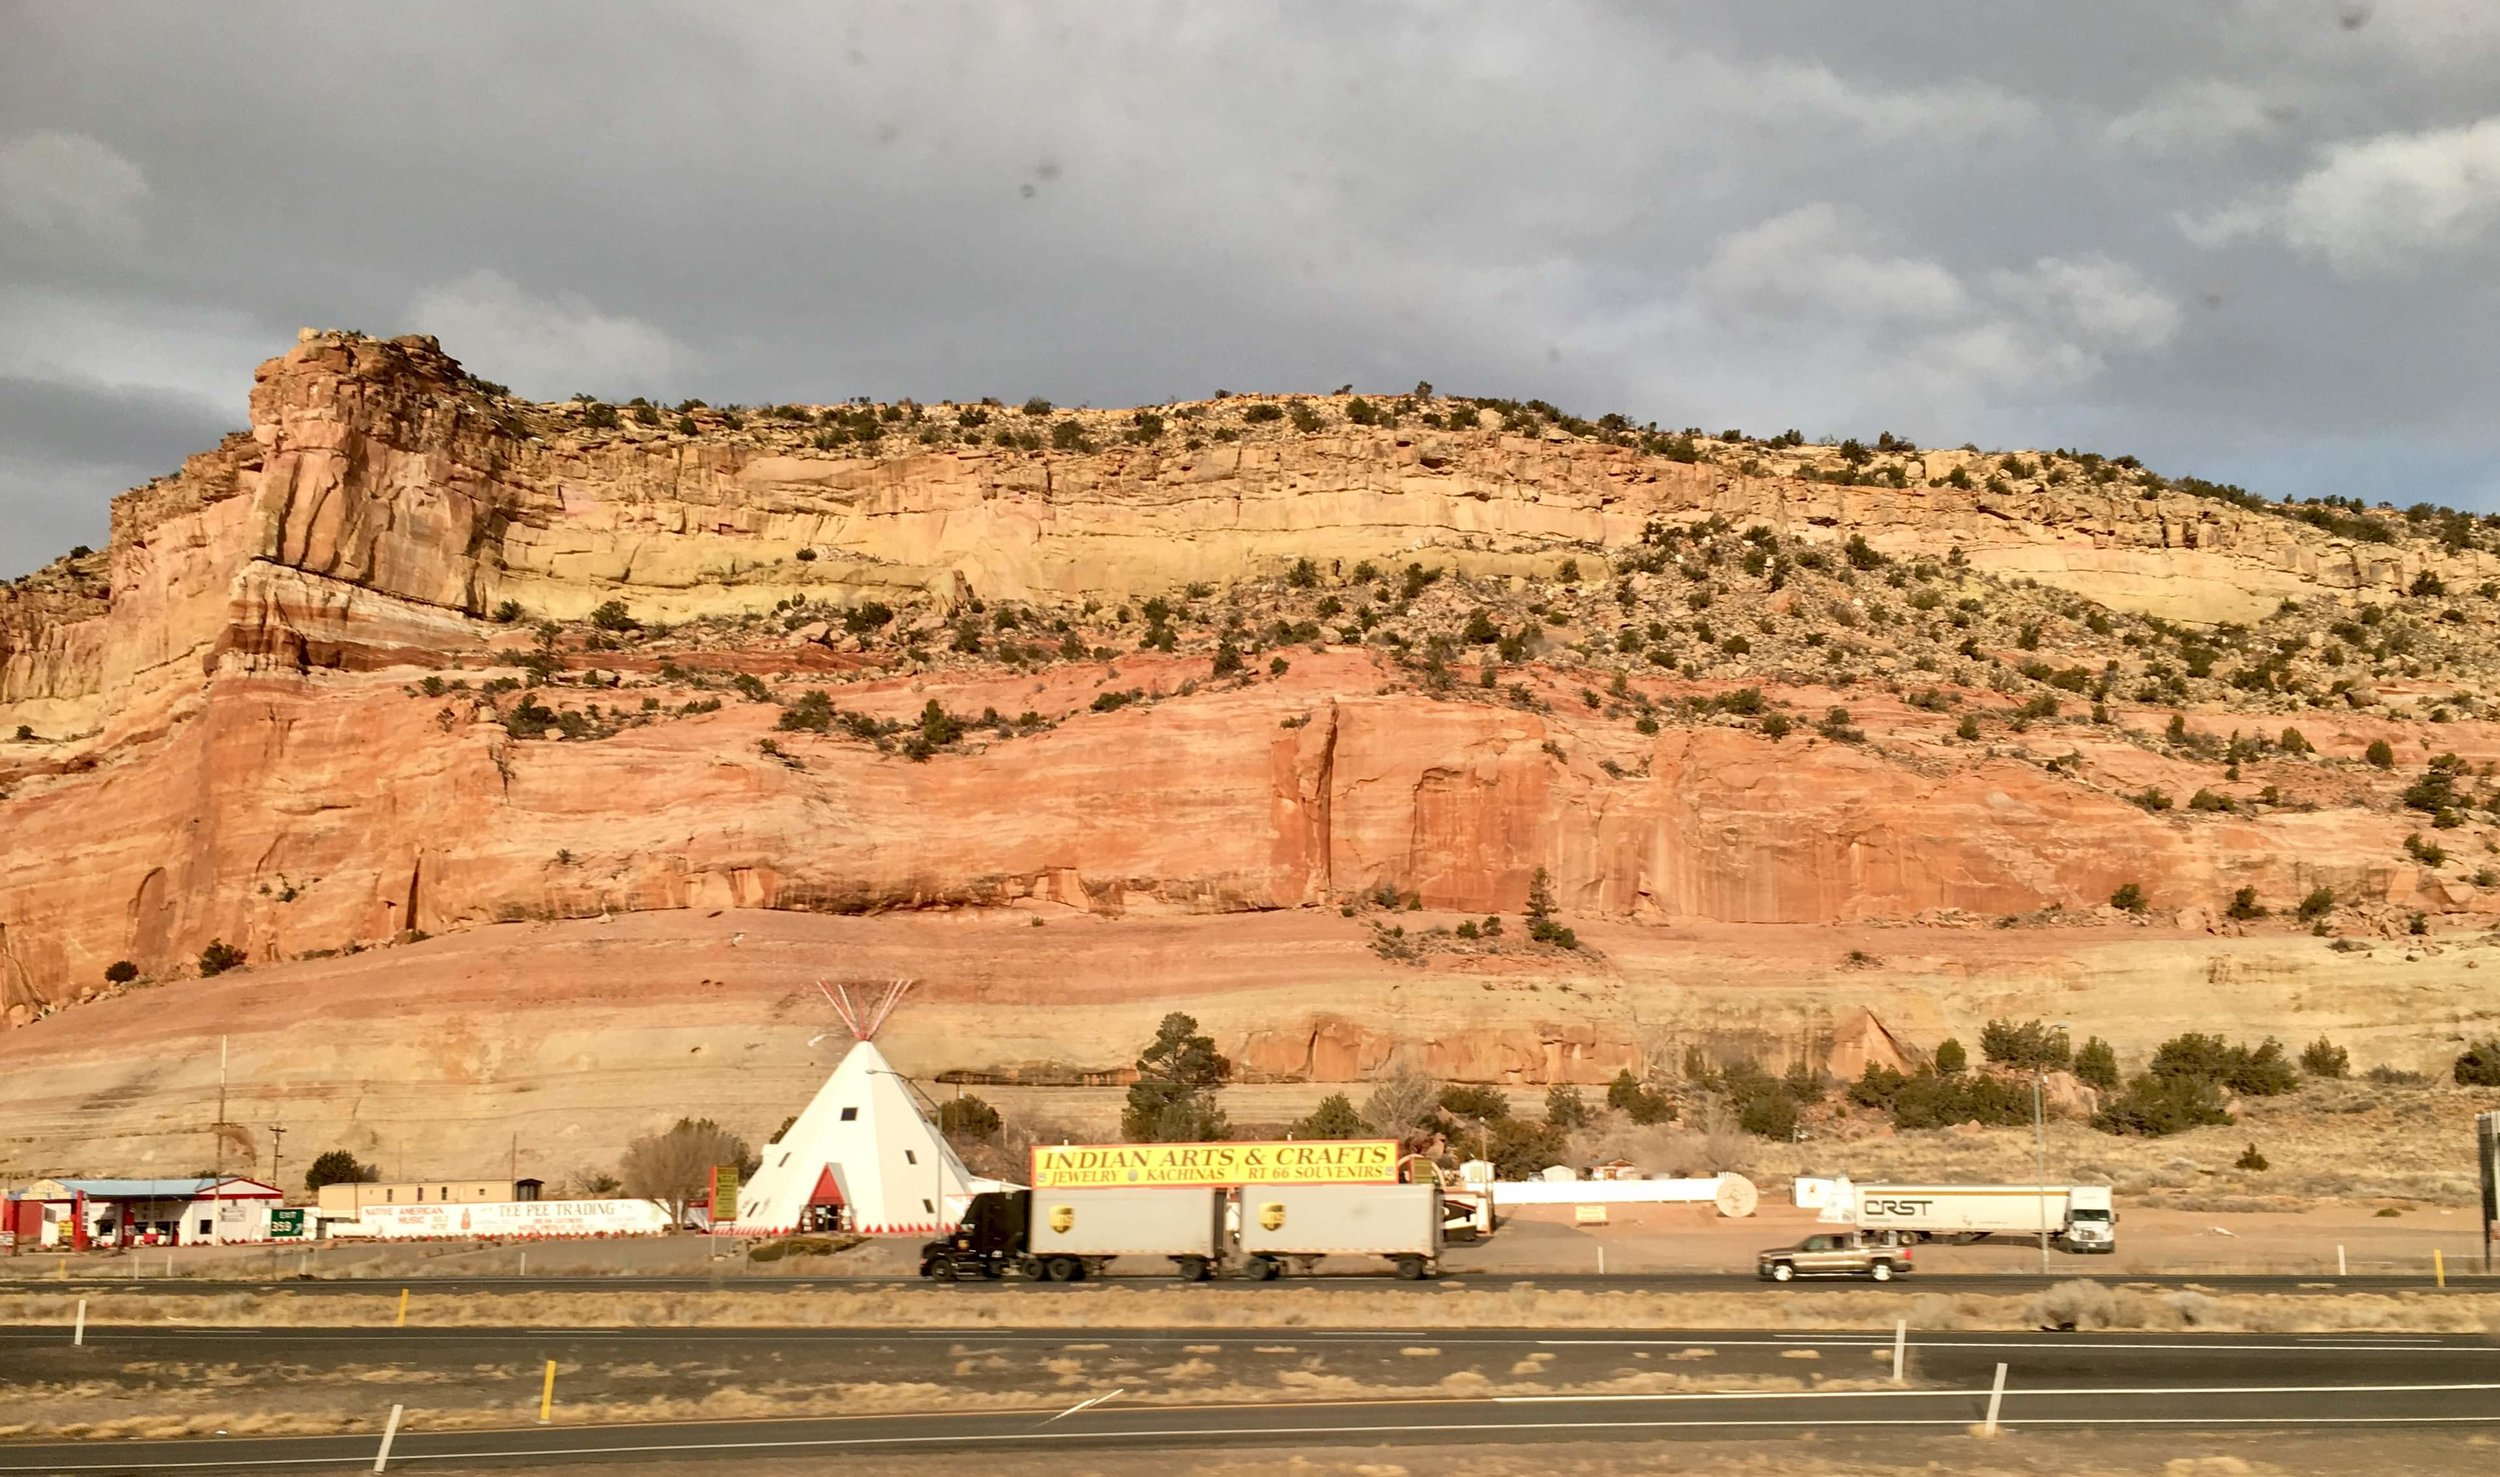 Somewhere in New Mexico, though it doesn't matter where you are so much as it is simply the feel of rolling along.